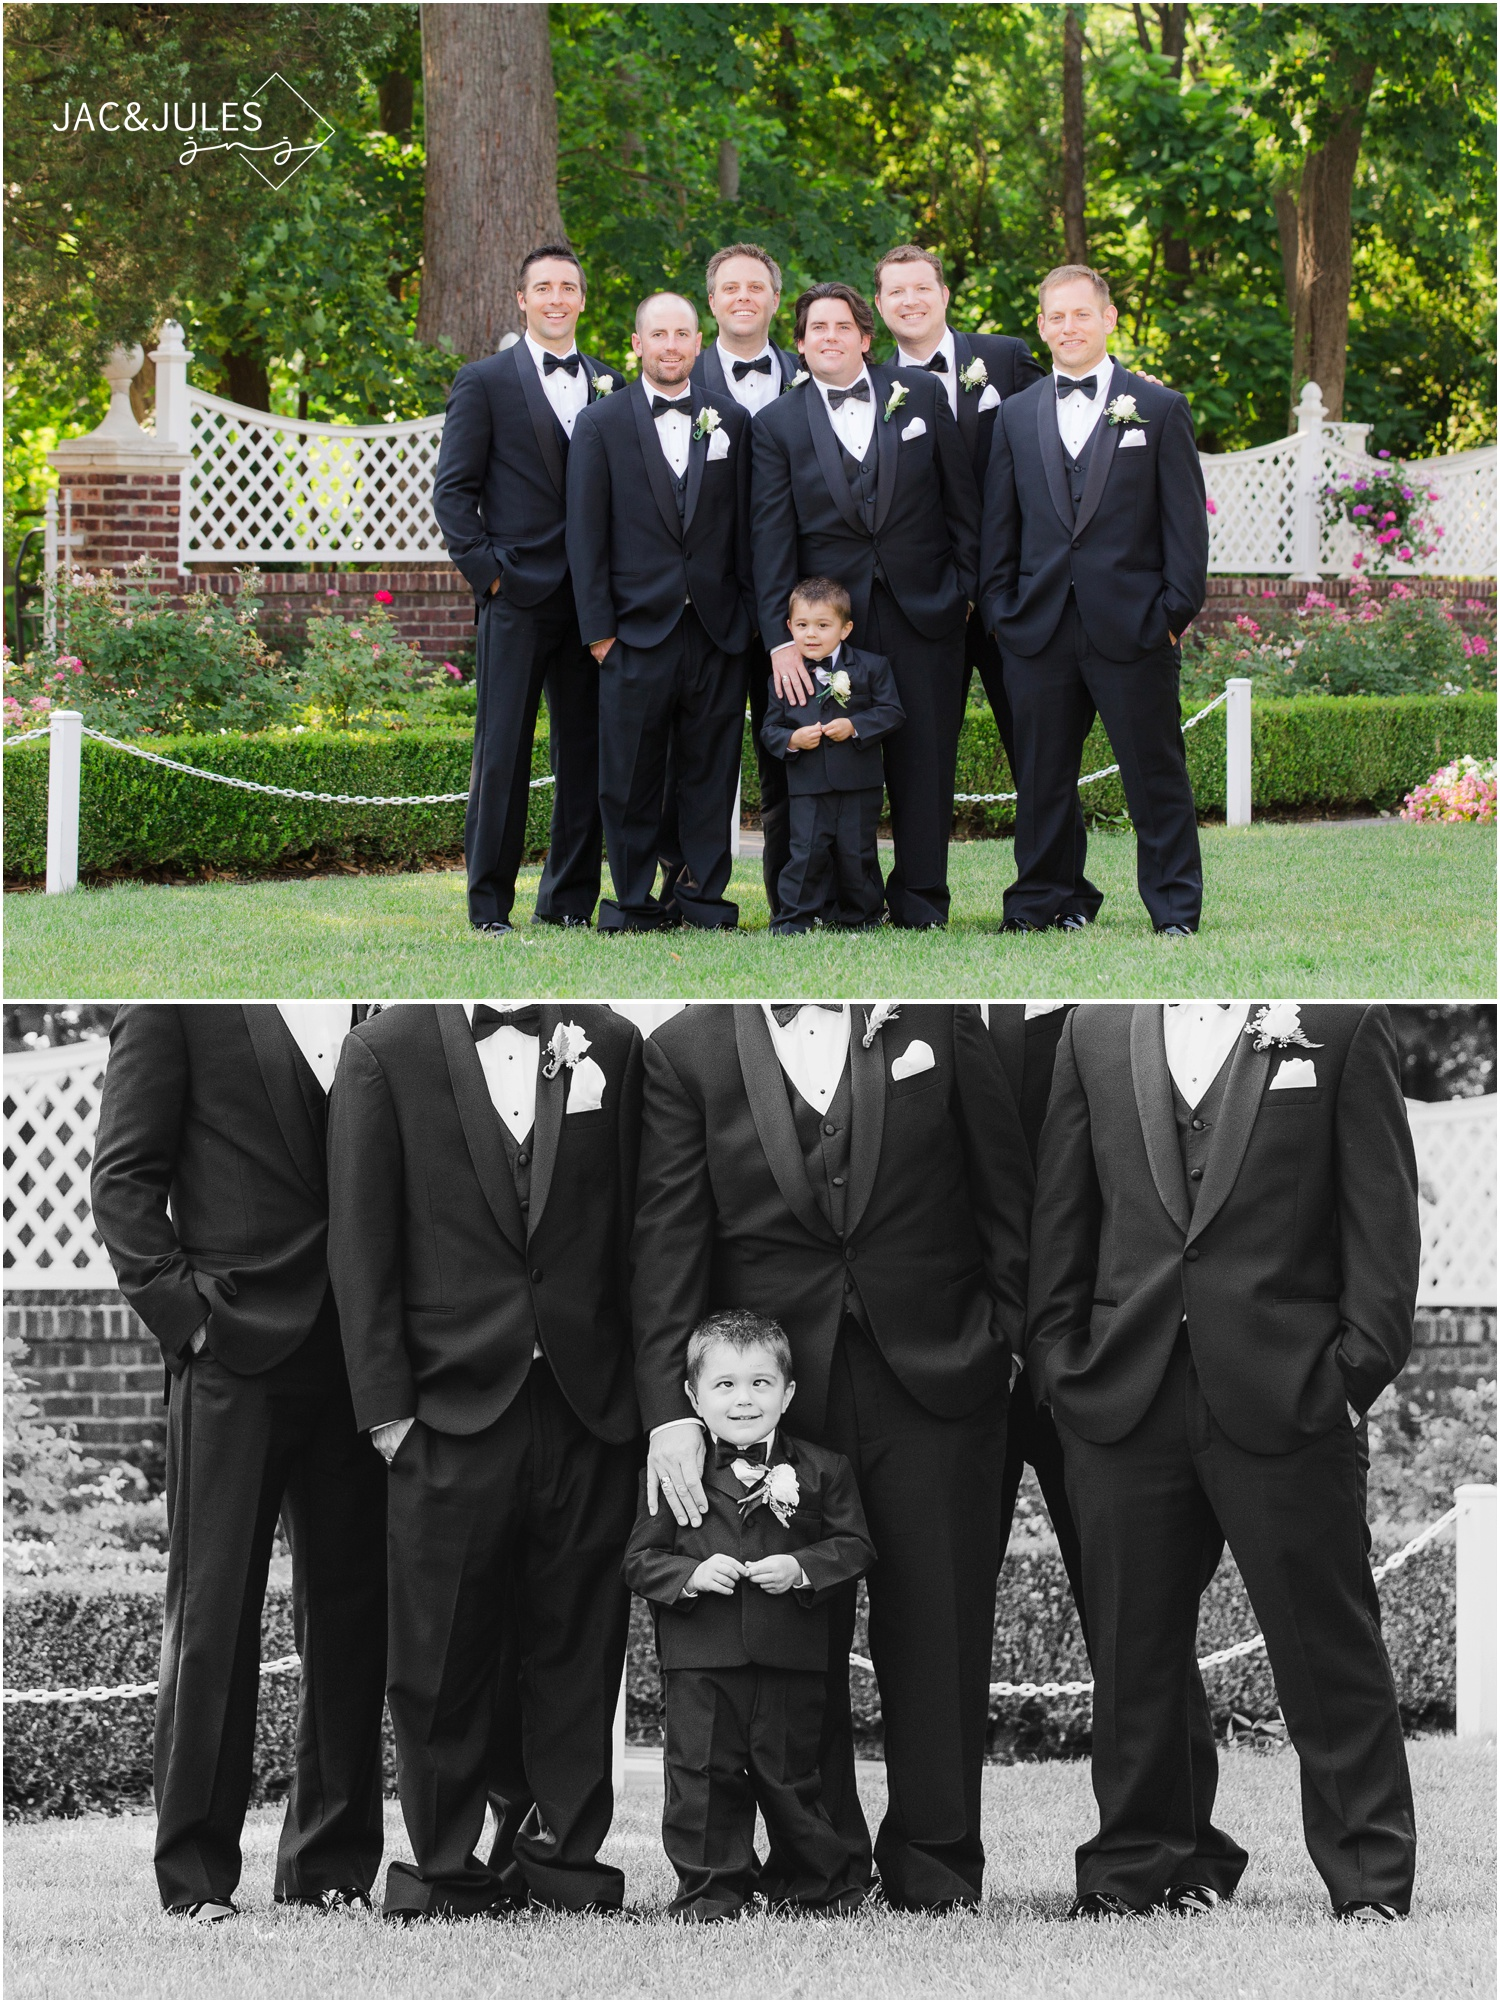 Groomsmen and ring bearer making funny face at The Shadowbrook in Shrewsbury, NJ.